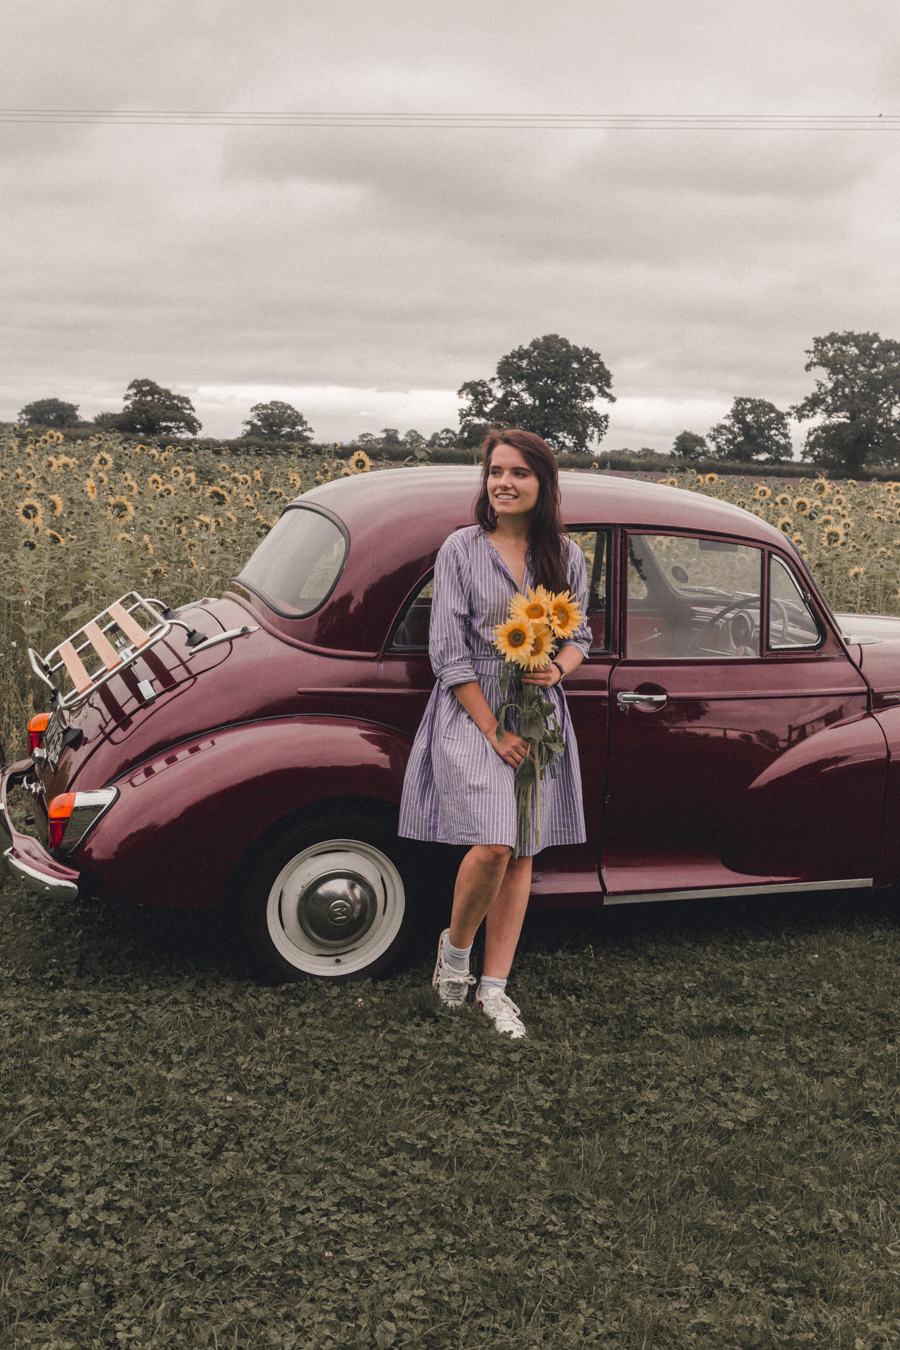 Morris Minor at Somerset Lavender Farm